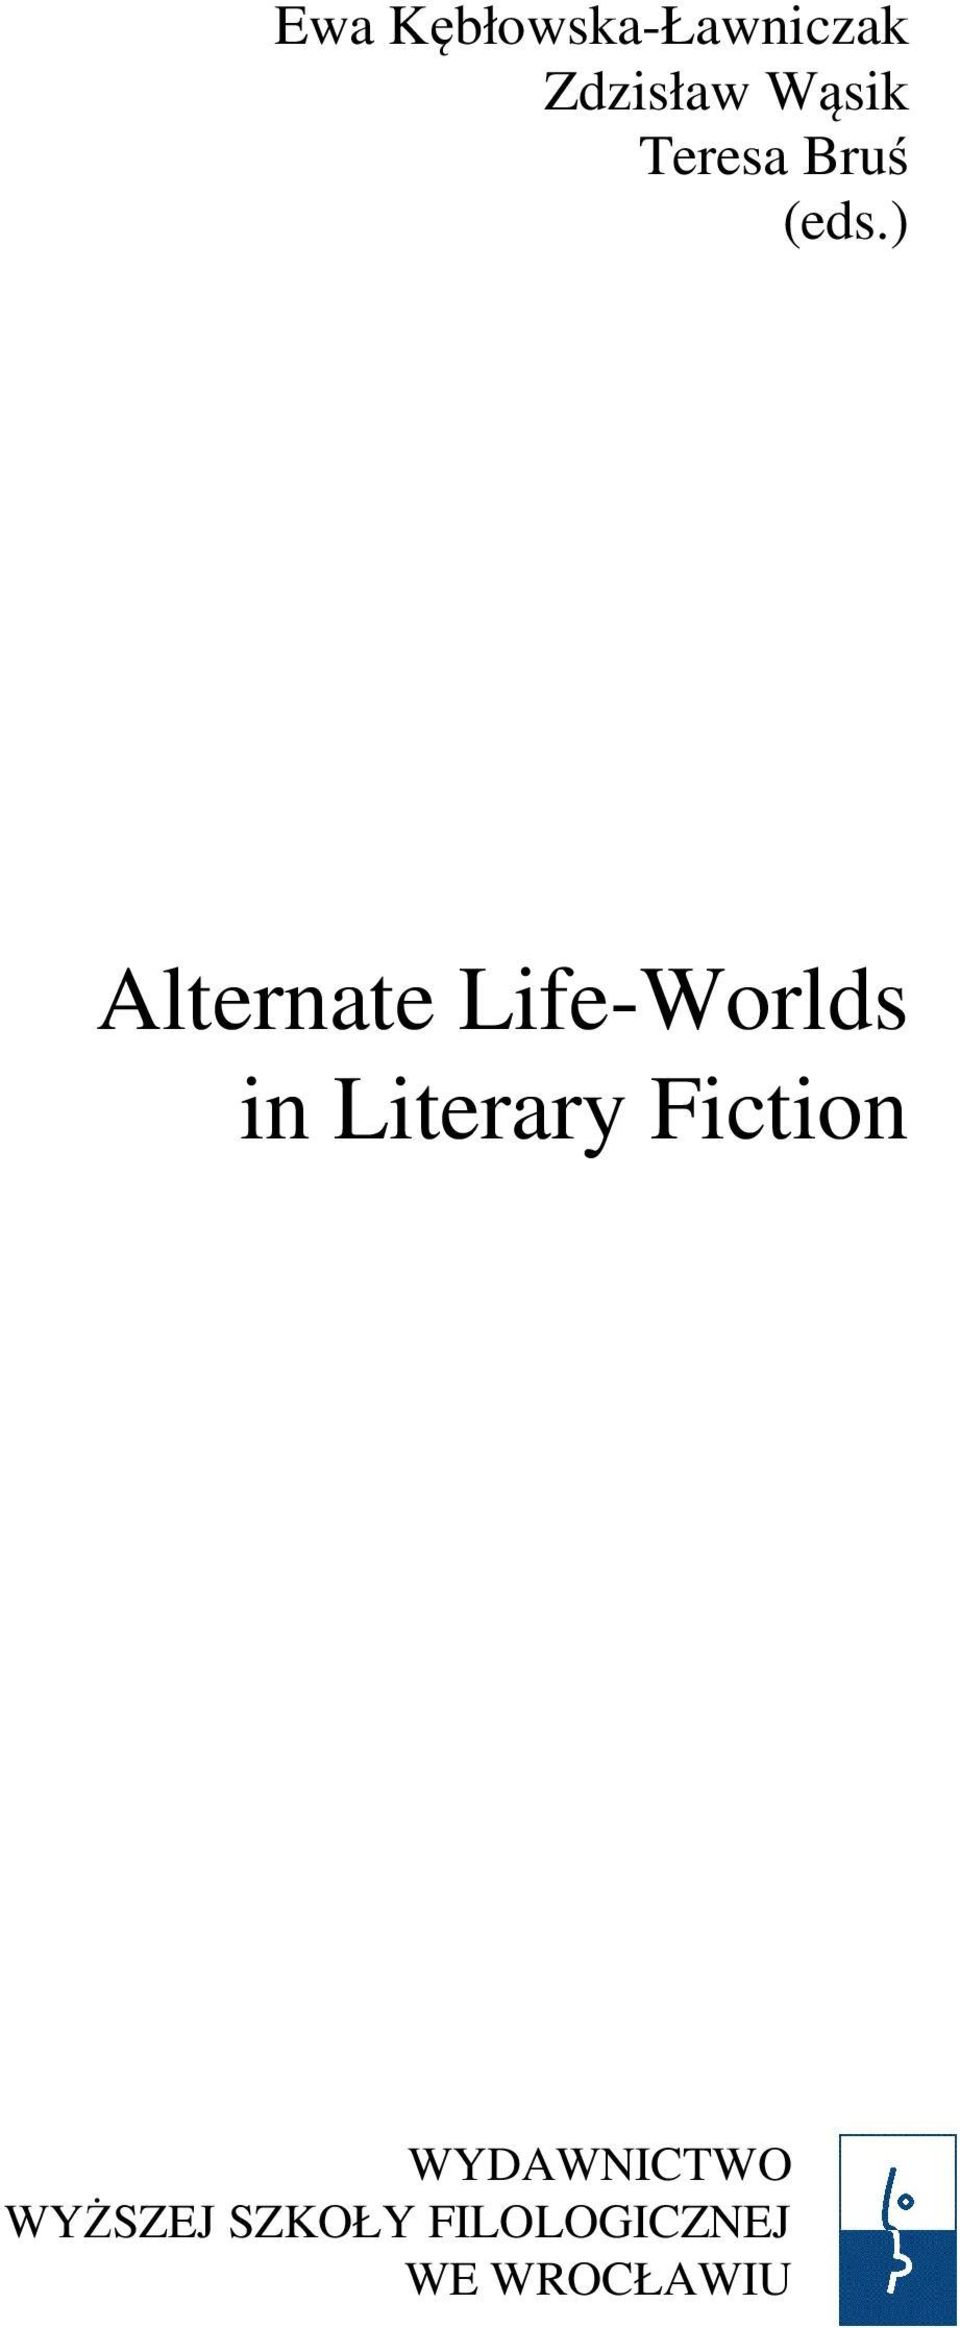 ) Alternate Life-Worlds in Literary